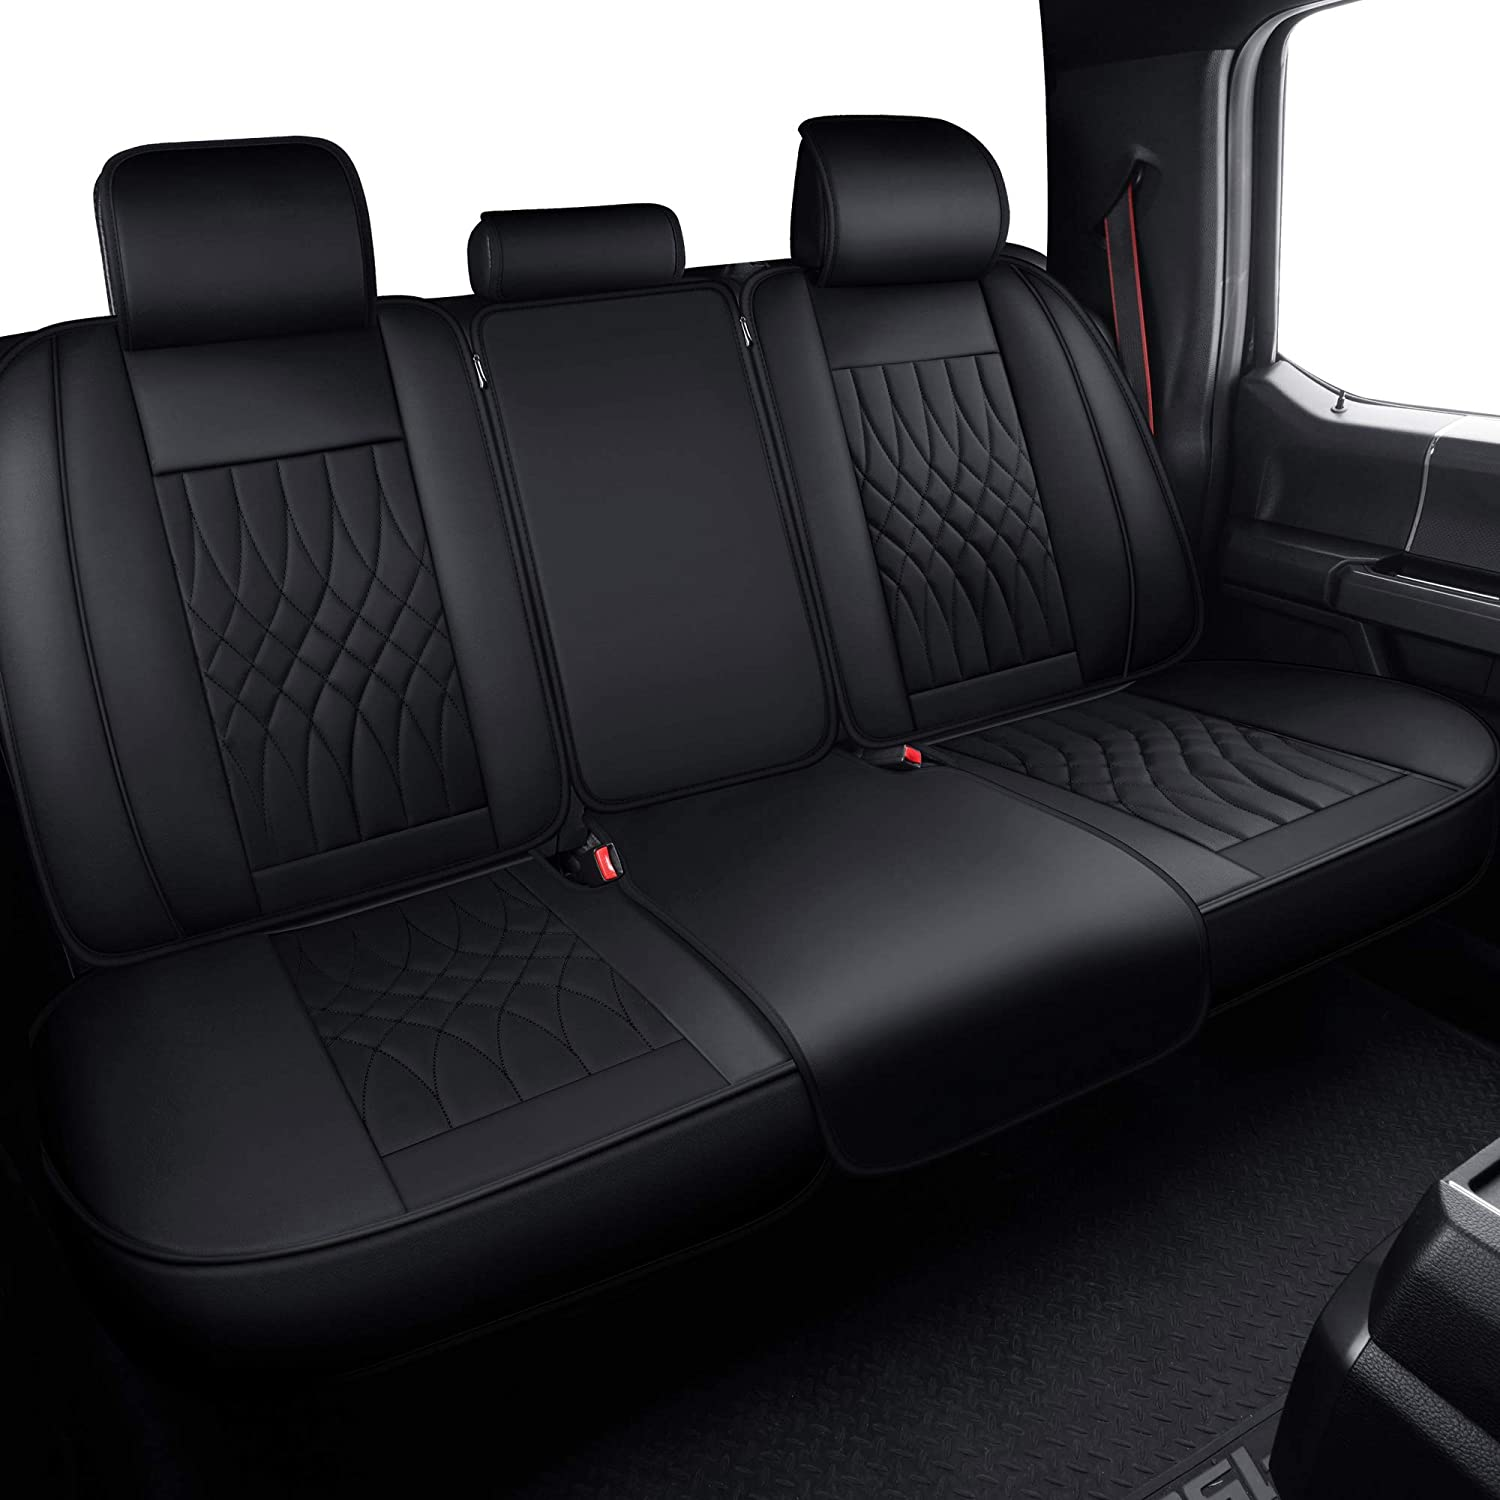 LUCKYMAN CLUB Front and Back Seat Covers fit for Ford F-150 F150 Crew Cab from 2015 to 2020 and fit for F250 F350 F450 Crew Cab from 2017 to 2020 with Faux Leather Black /& Red Full Set